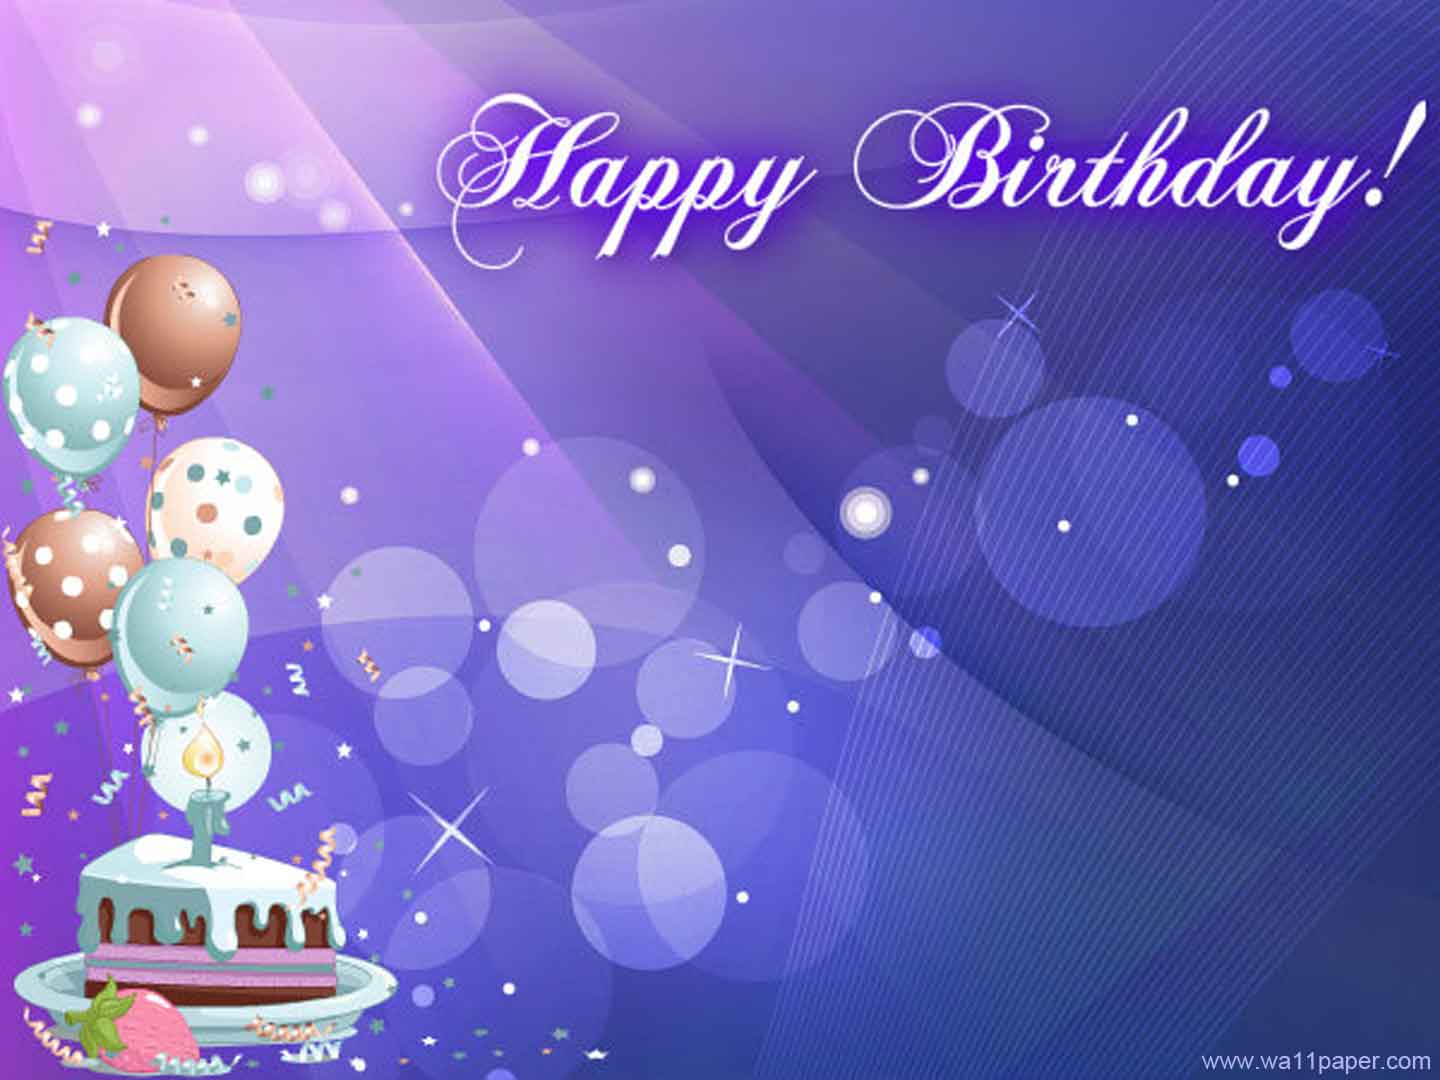 73 @ Birthday Quotes Images